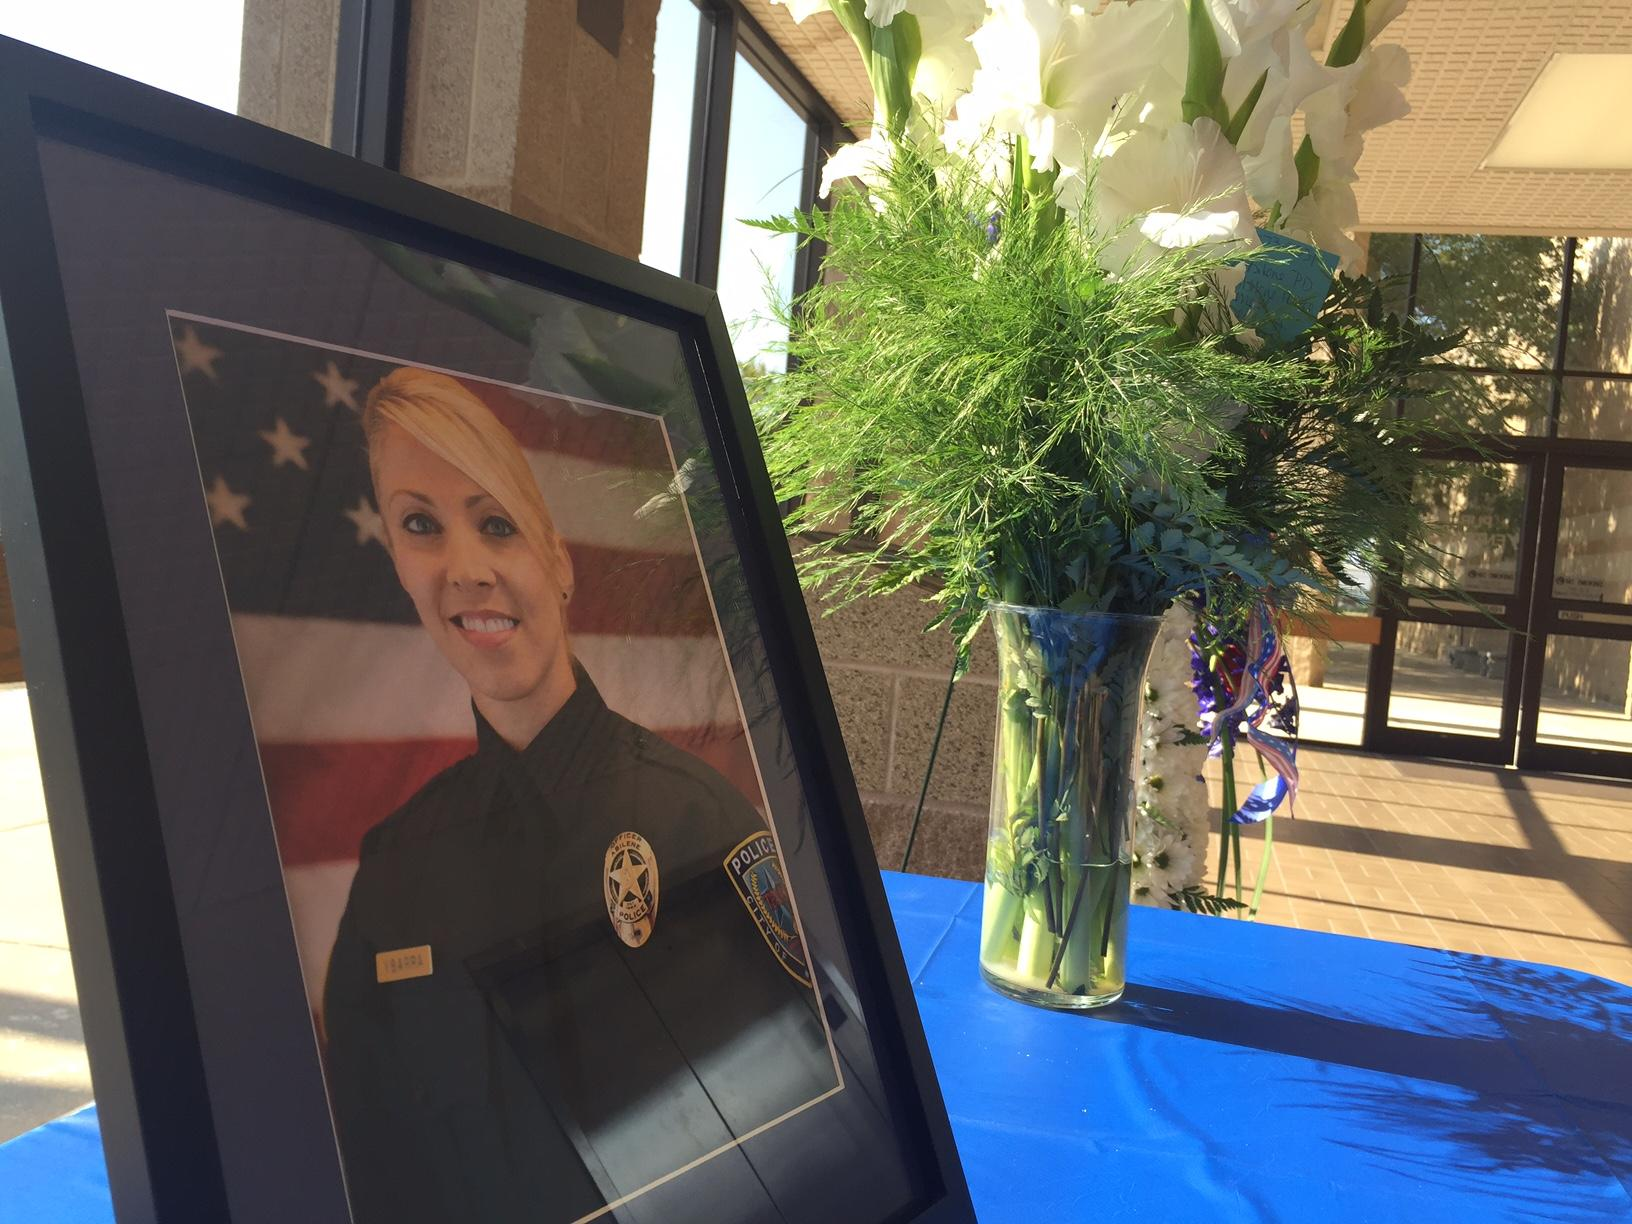 A display at the Law Enforcement Center is honoring Abilene police detective Elise Ybarra, who was killed in in a crash Sunday.